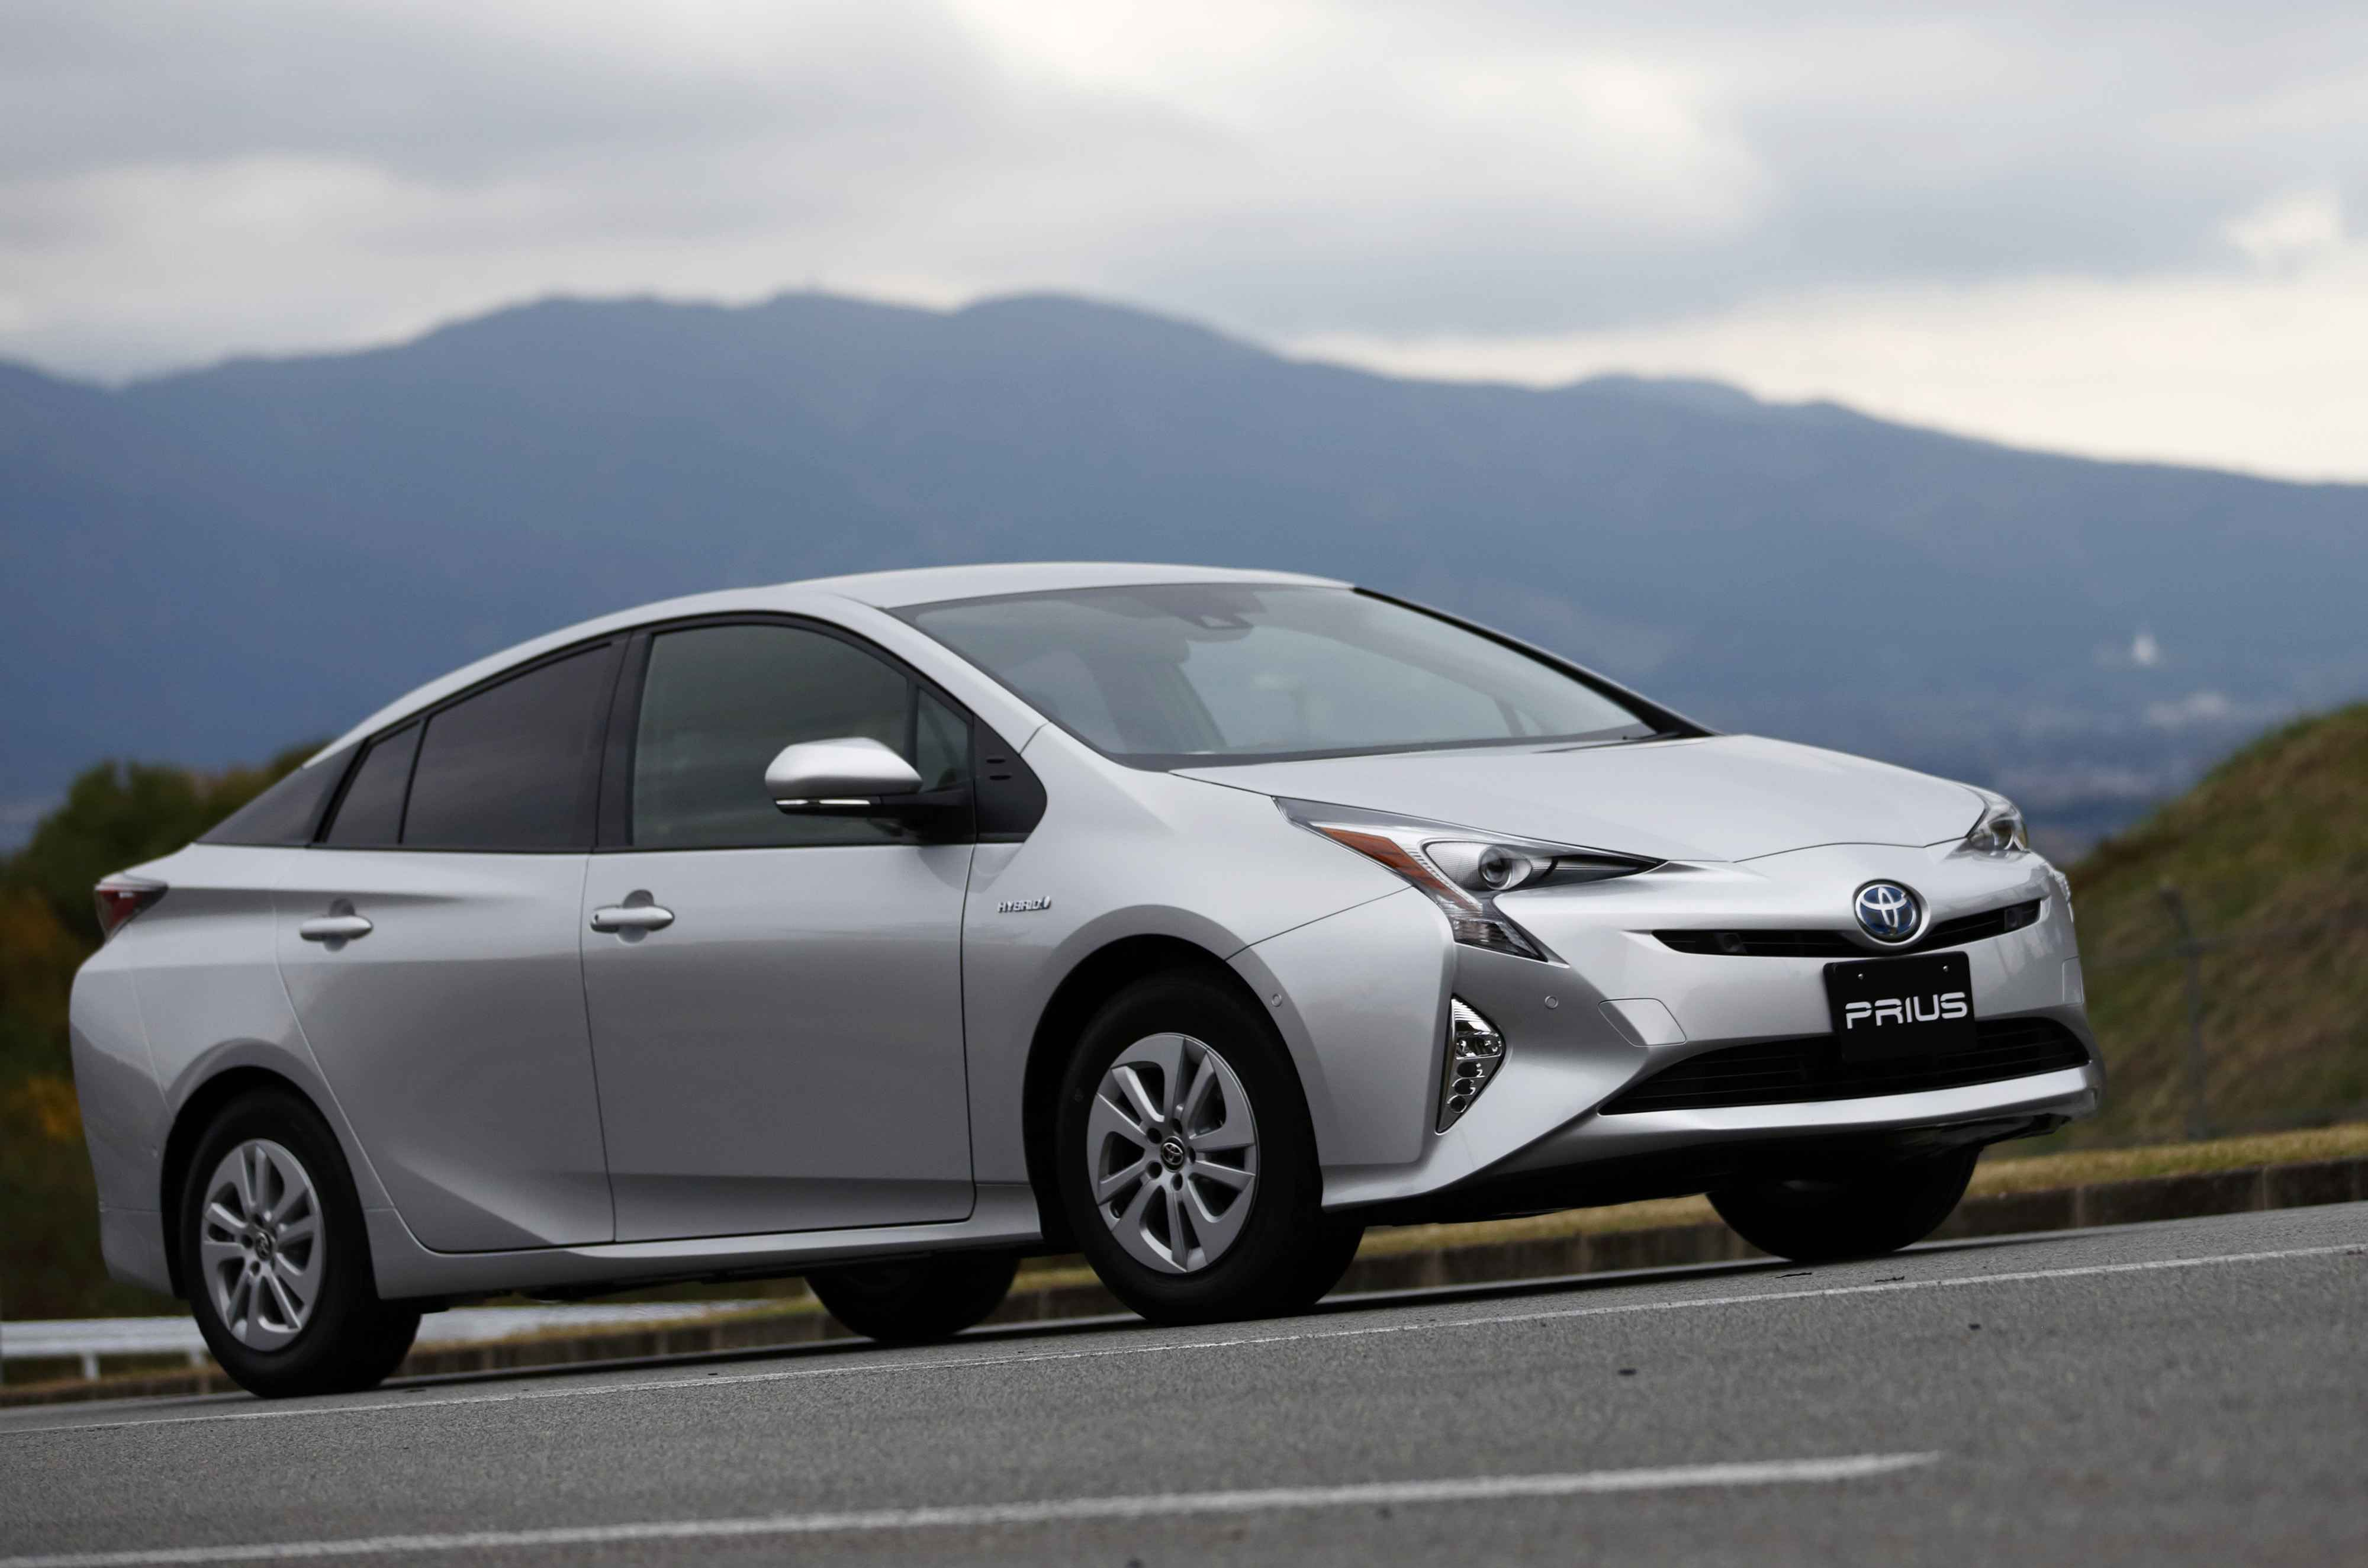 Lifestyle Green Living Carbon Footprint Hybrid Electric Vehicles